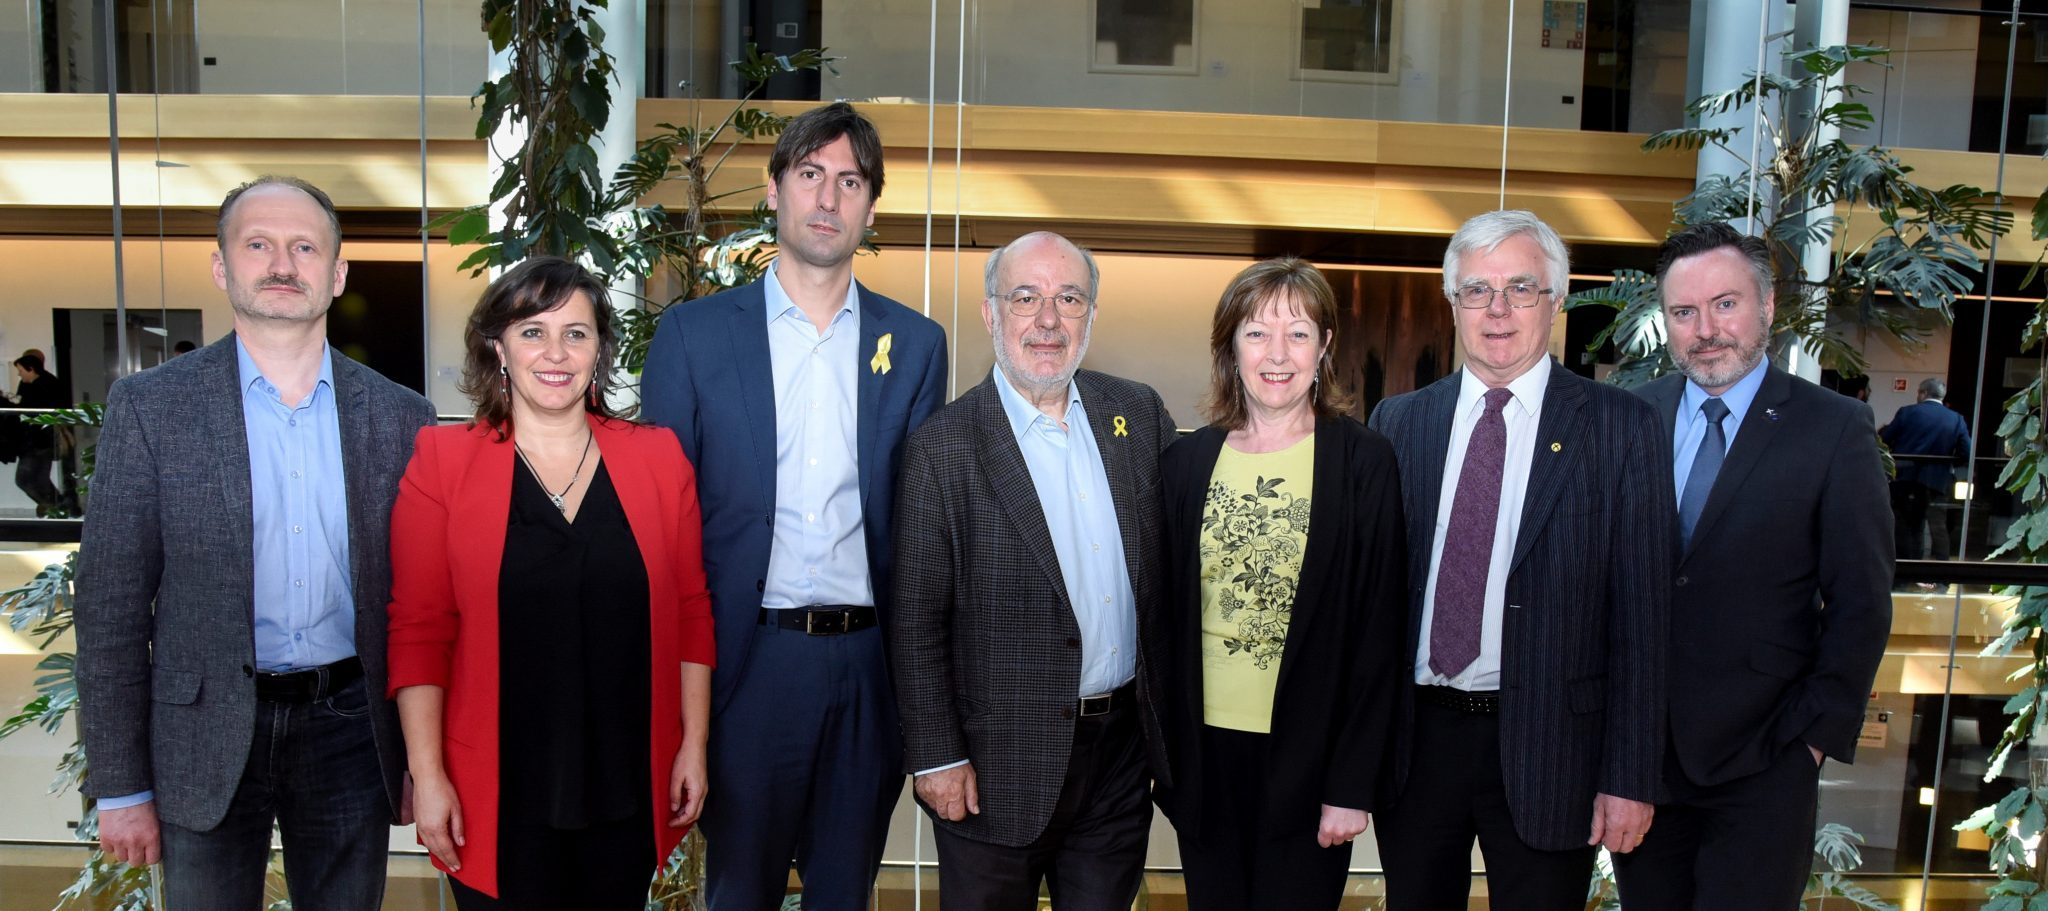 Discover the work of the EFA Group in the European Parliament